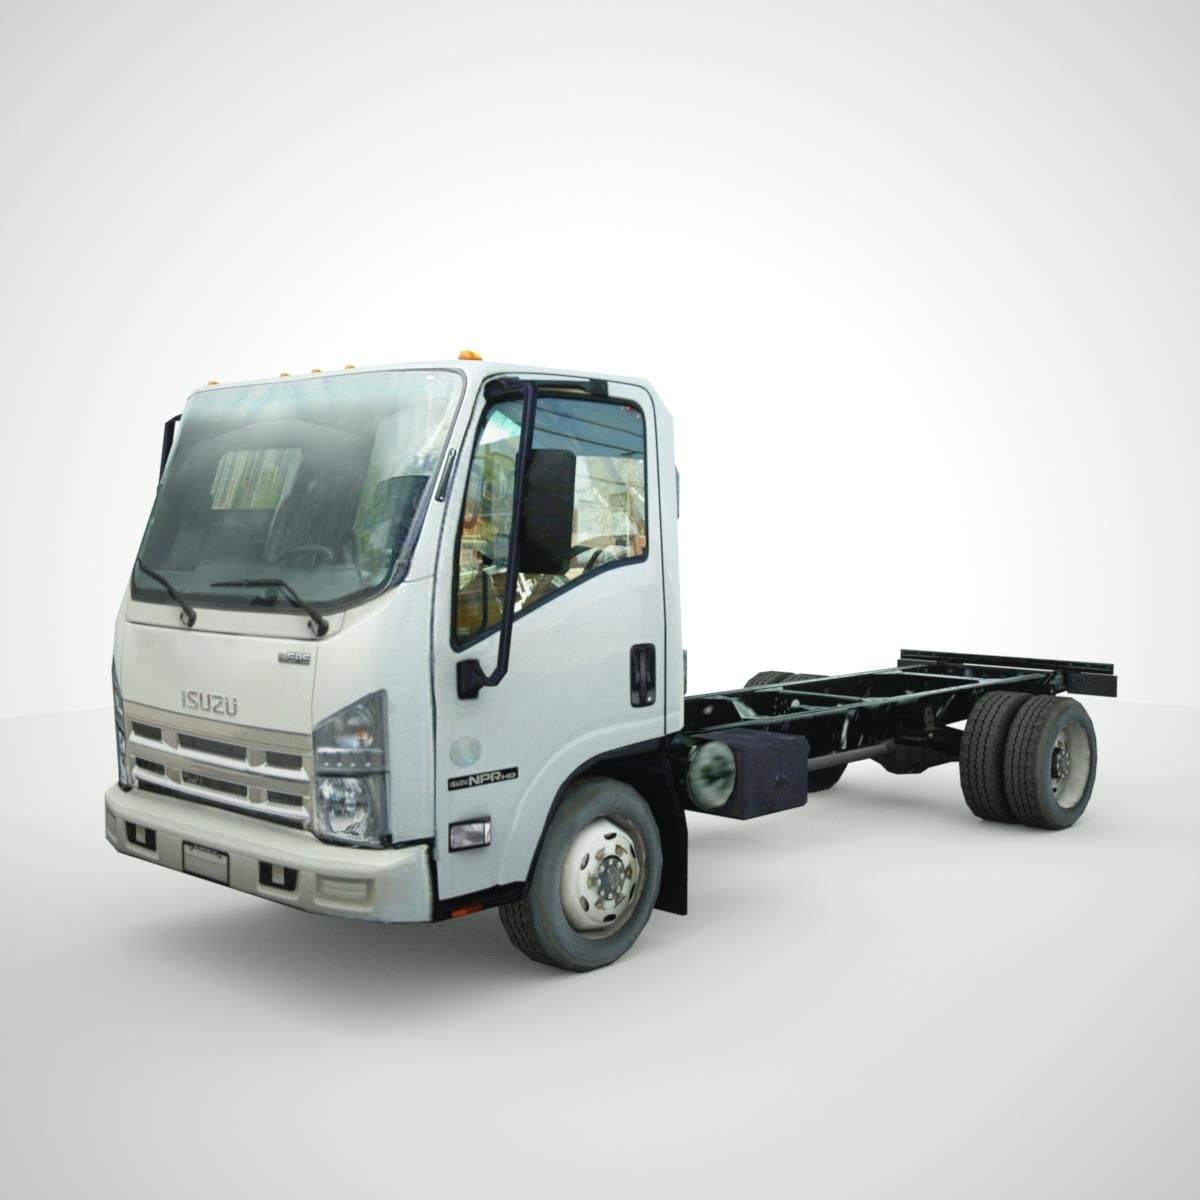 Isuzu Npr 75l 2012 3d Model Ad Npr Isuzu Model Visual Design Trends Graphic Design Portfolio Print 3d Model